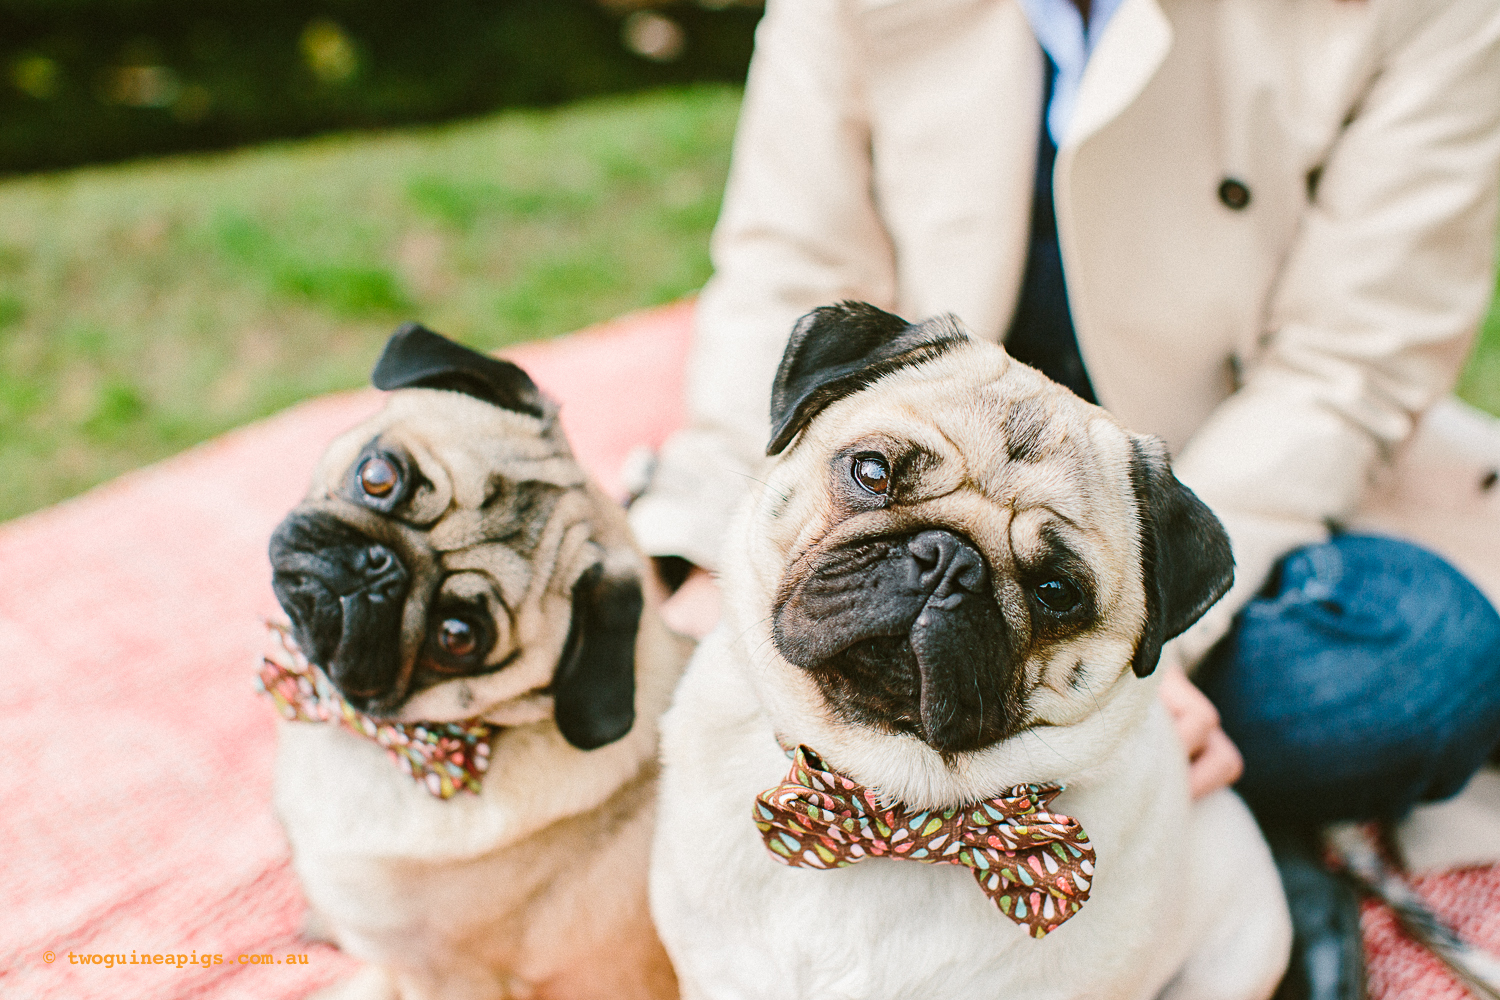 twoguineapigs_pet_photography_oh_jaffa_picnic_pugs_rodger_1500-4.jpg